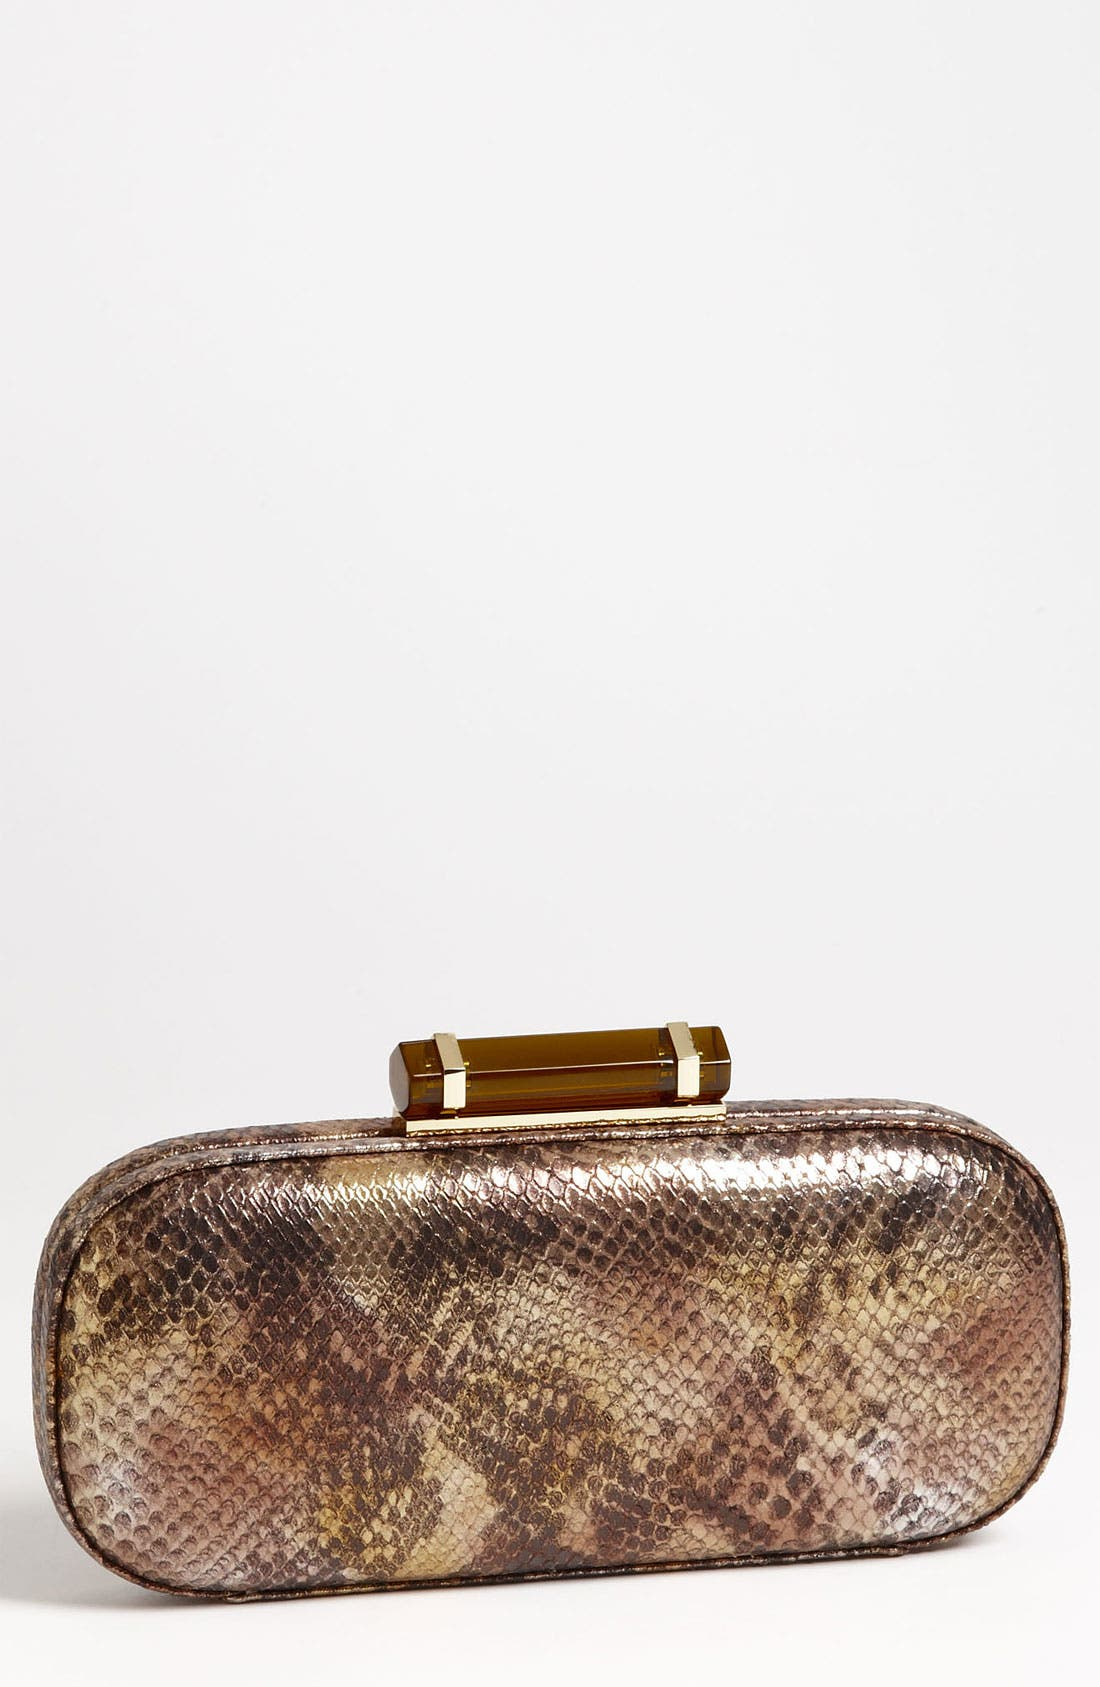 Alternate Image 1 Selected - Vince Camuto 'Onyx' Clutch